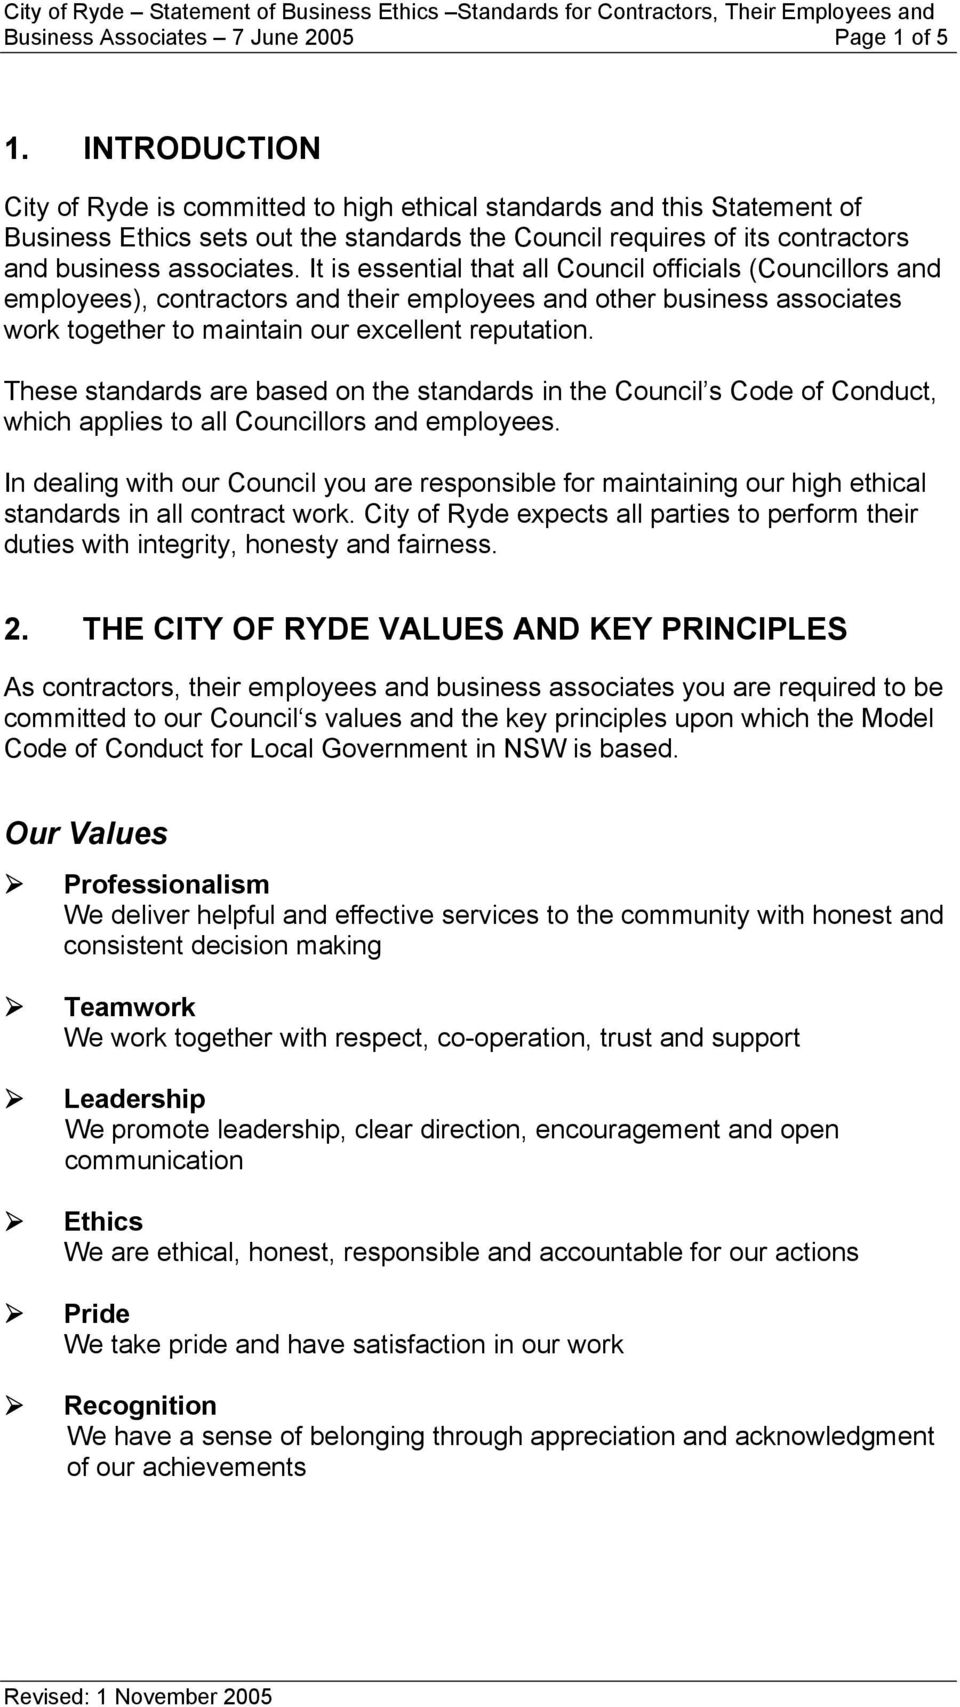 It is essential that all Council officials (Councillors and employees), contractors and their employees and other business associates work together to maintain our excellent reputation.